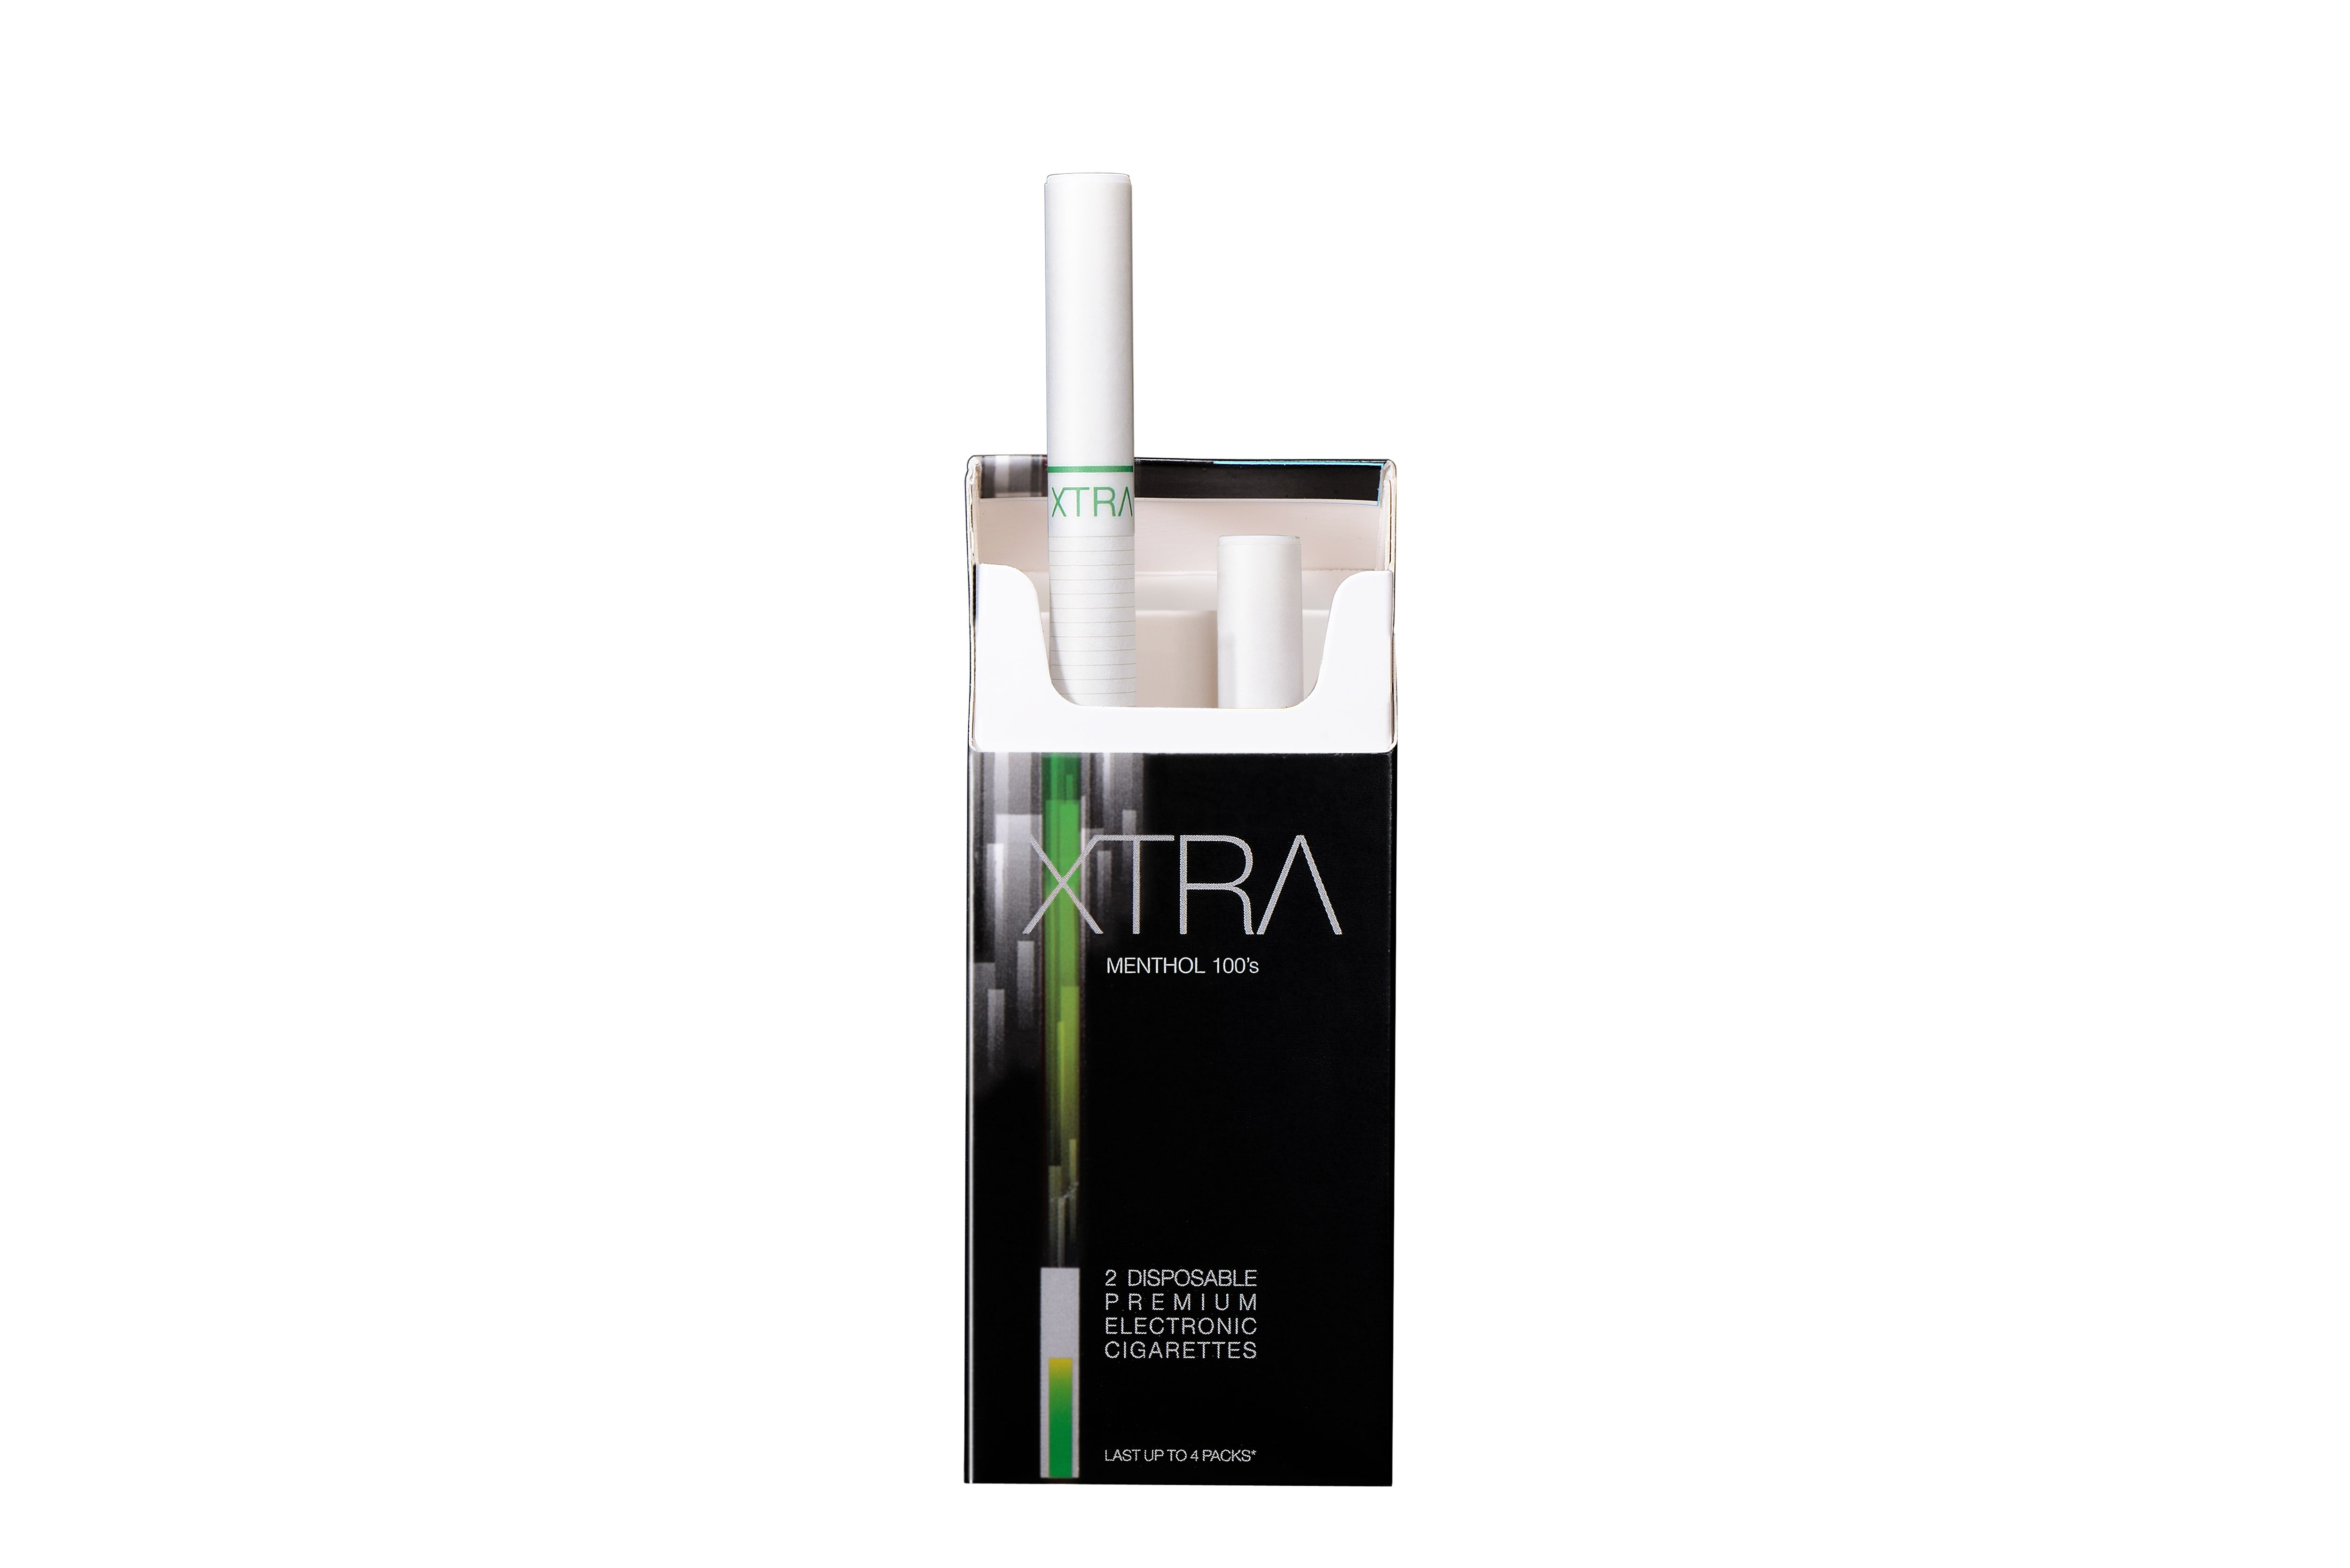 Our cooling menthol ecigs actually taste like cool, refreshing menthols.